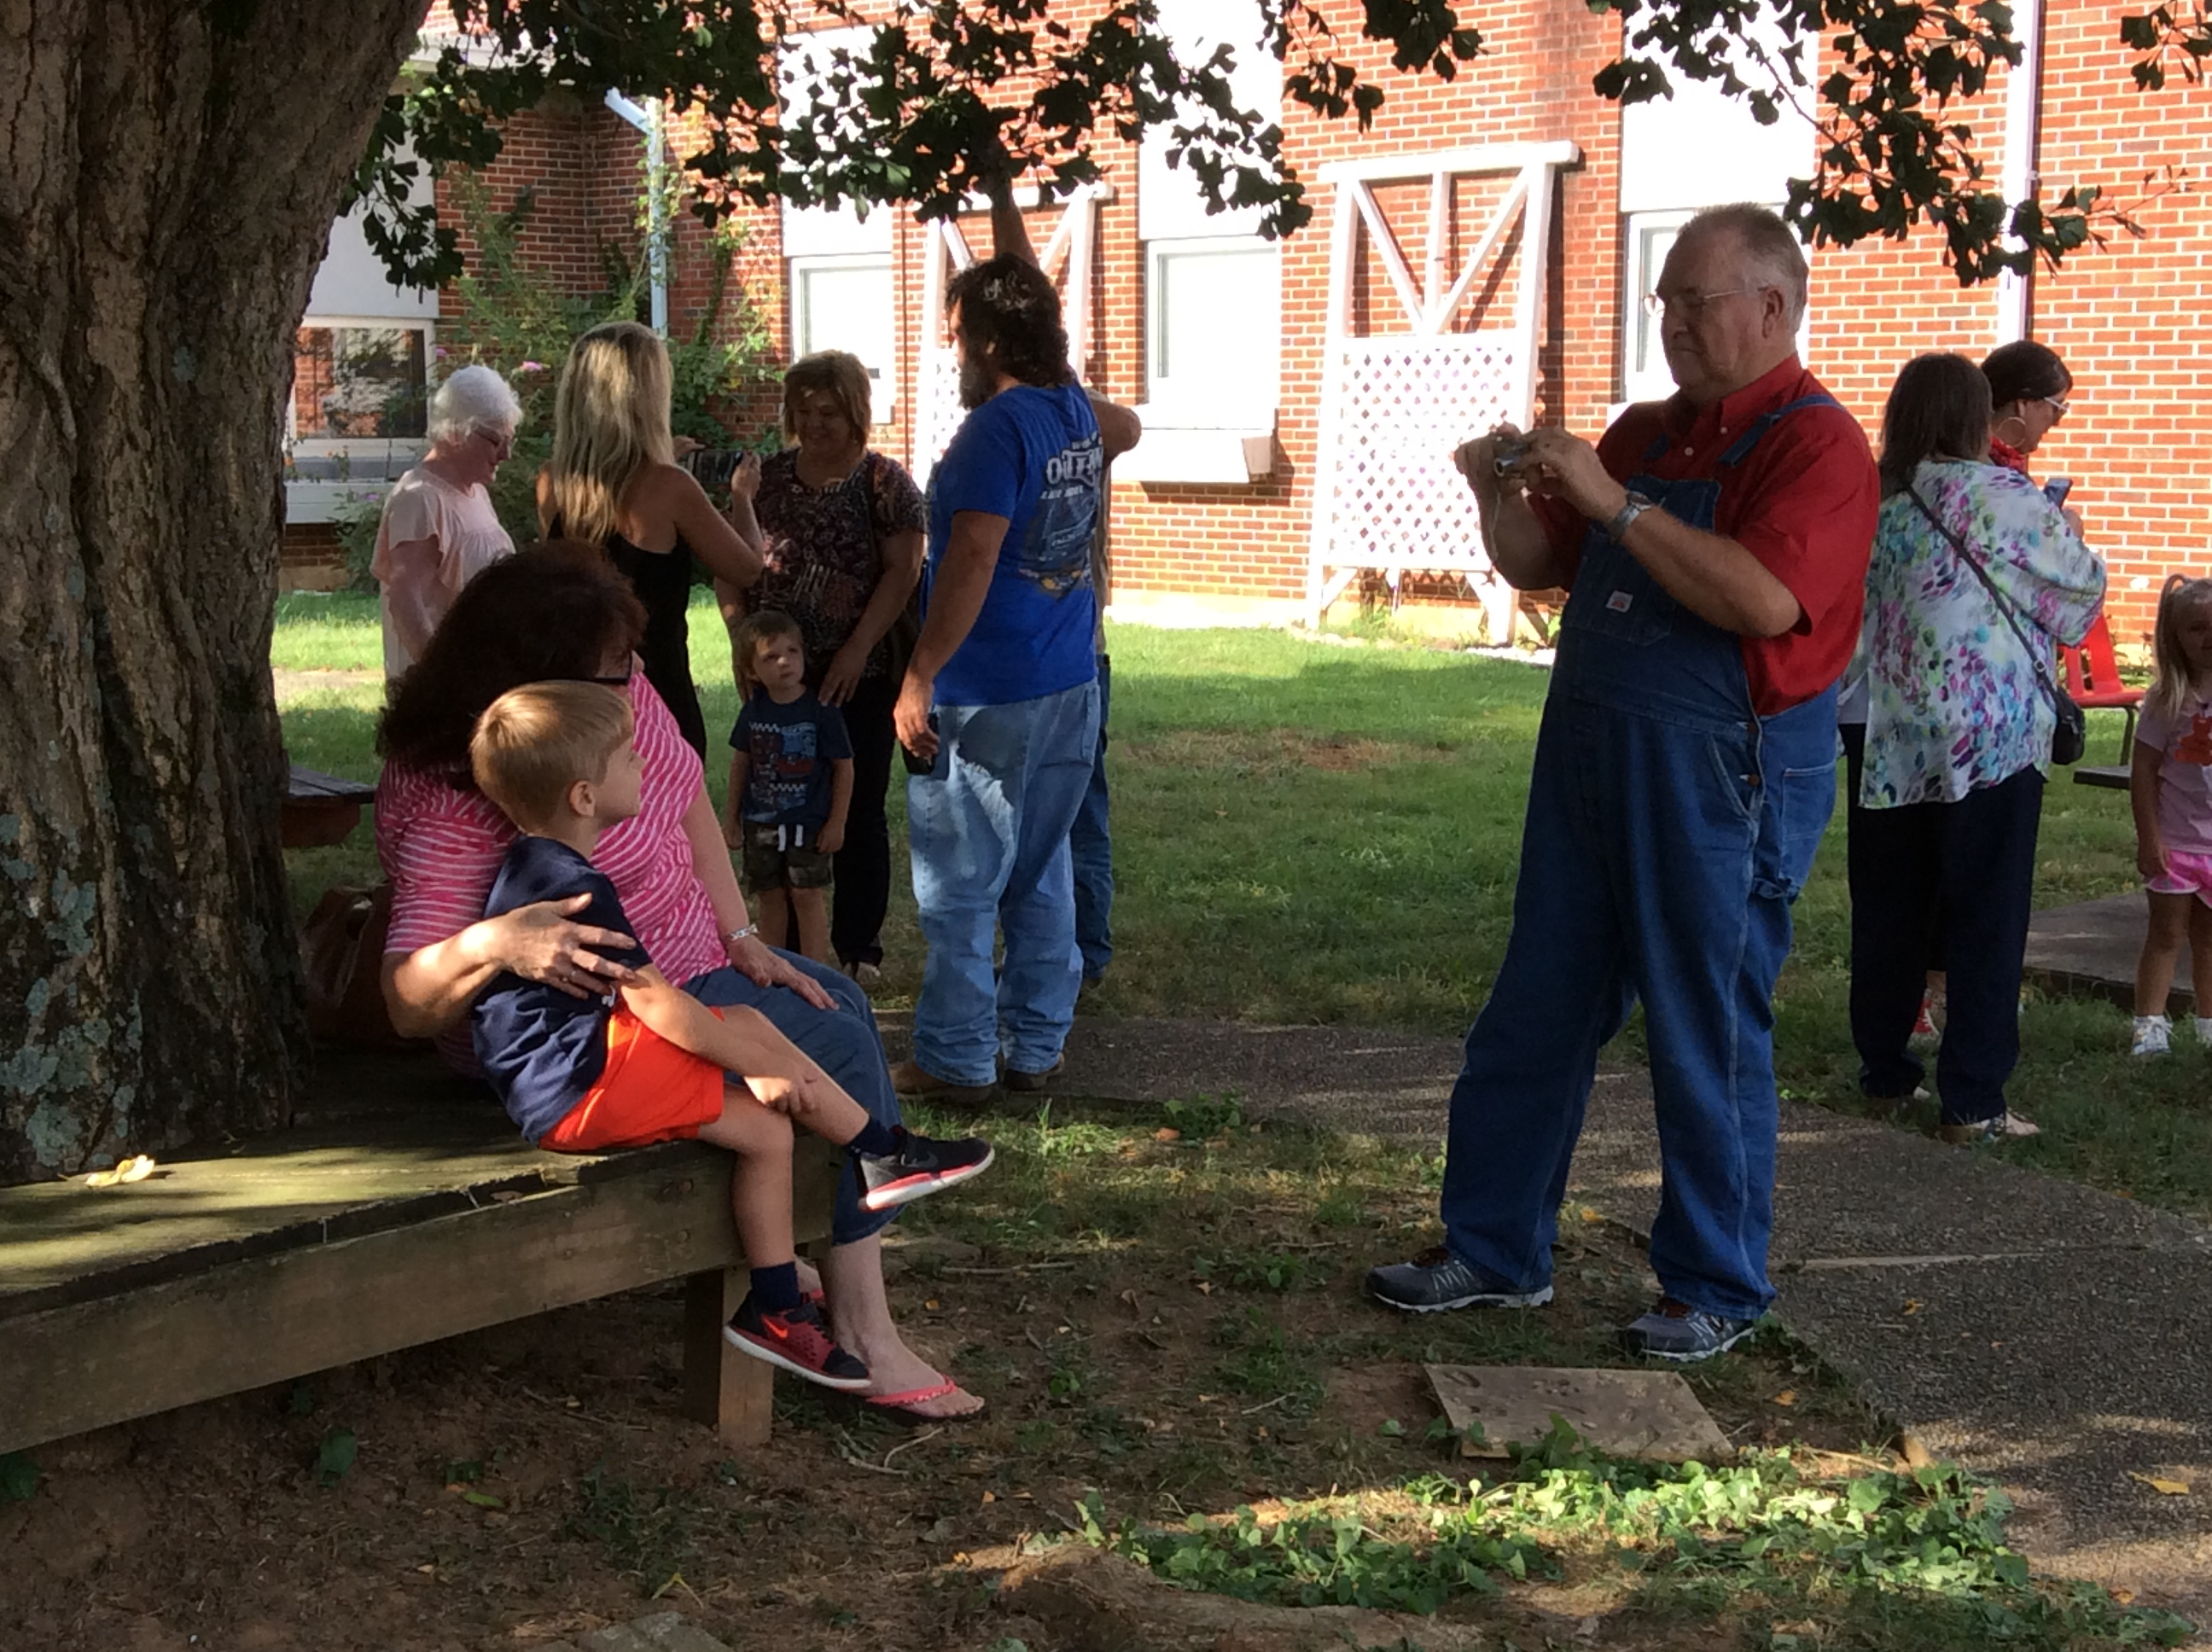 Denver Godsey takes a picture of his wife, Lea Etta and grandson Mathias McWhorter during Grandparents Week at Walker.